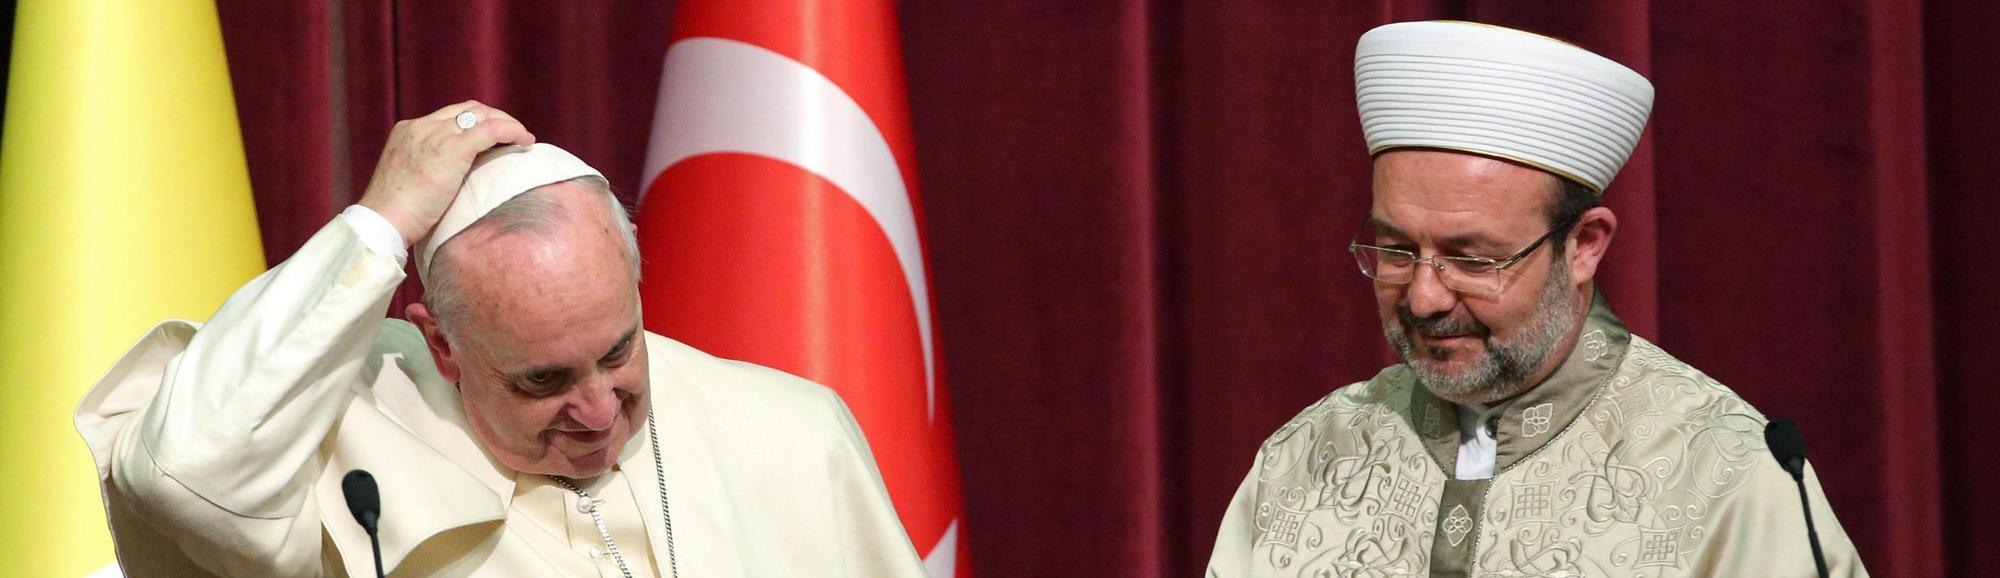 Our Cleric's Better Than Your Cleric: Turkey's President Promises Top Imam a Private Jet